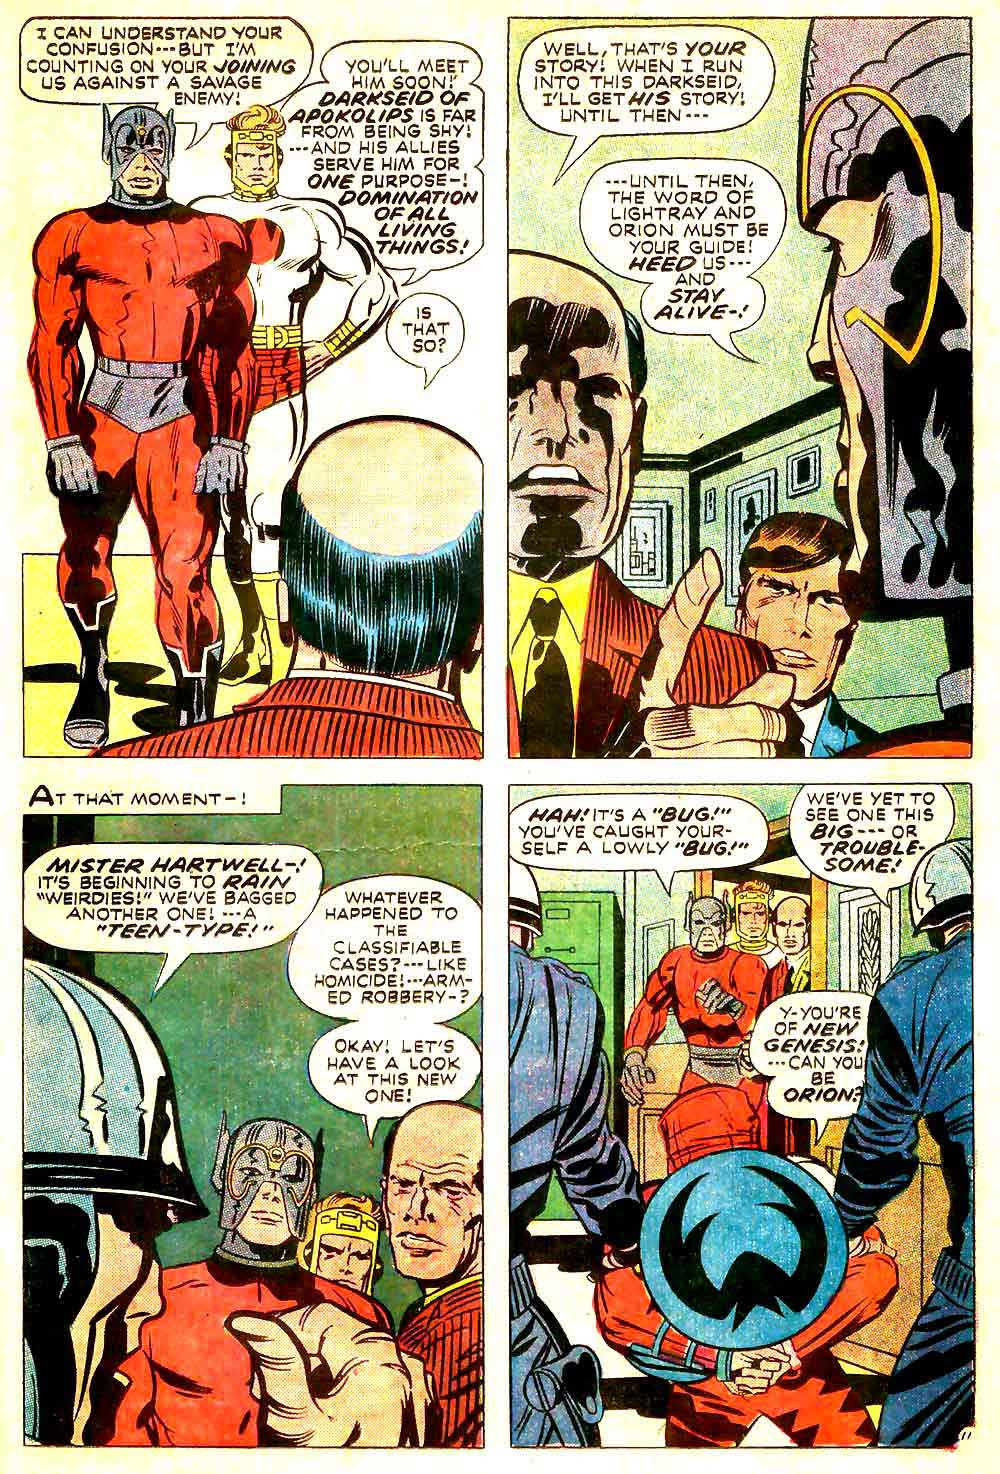 New Gods v1 #10 dc bronze age comic book page art by Jack Kirby